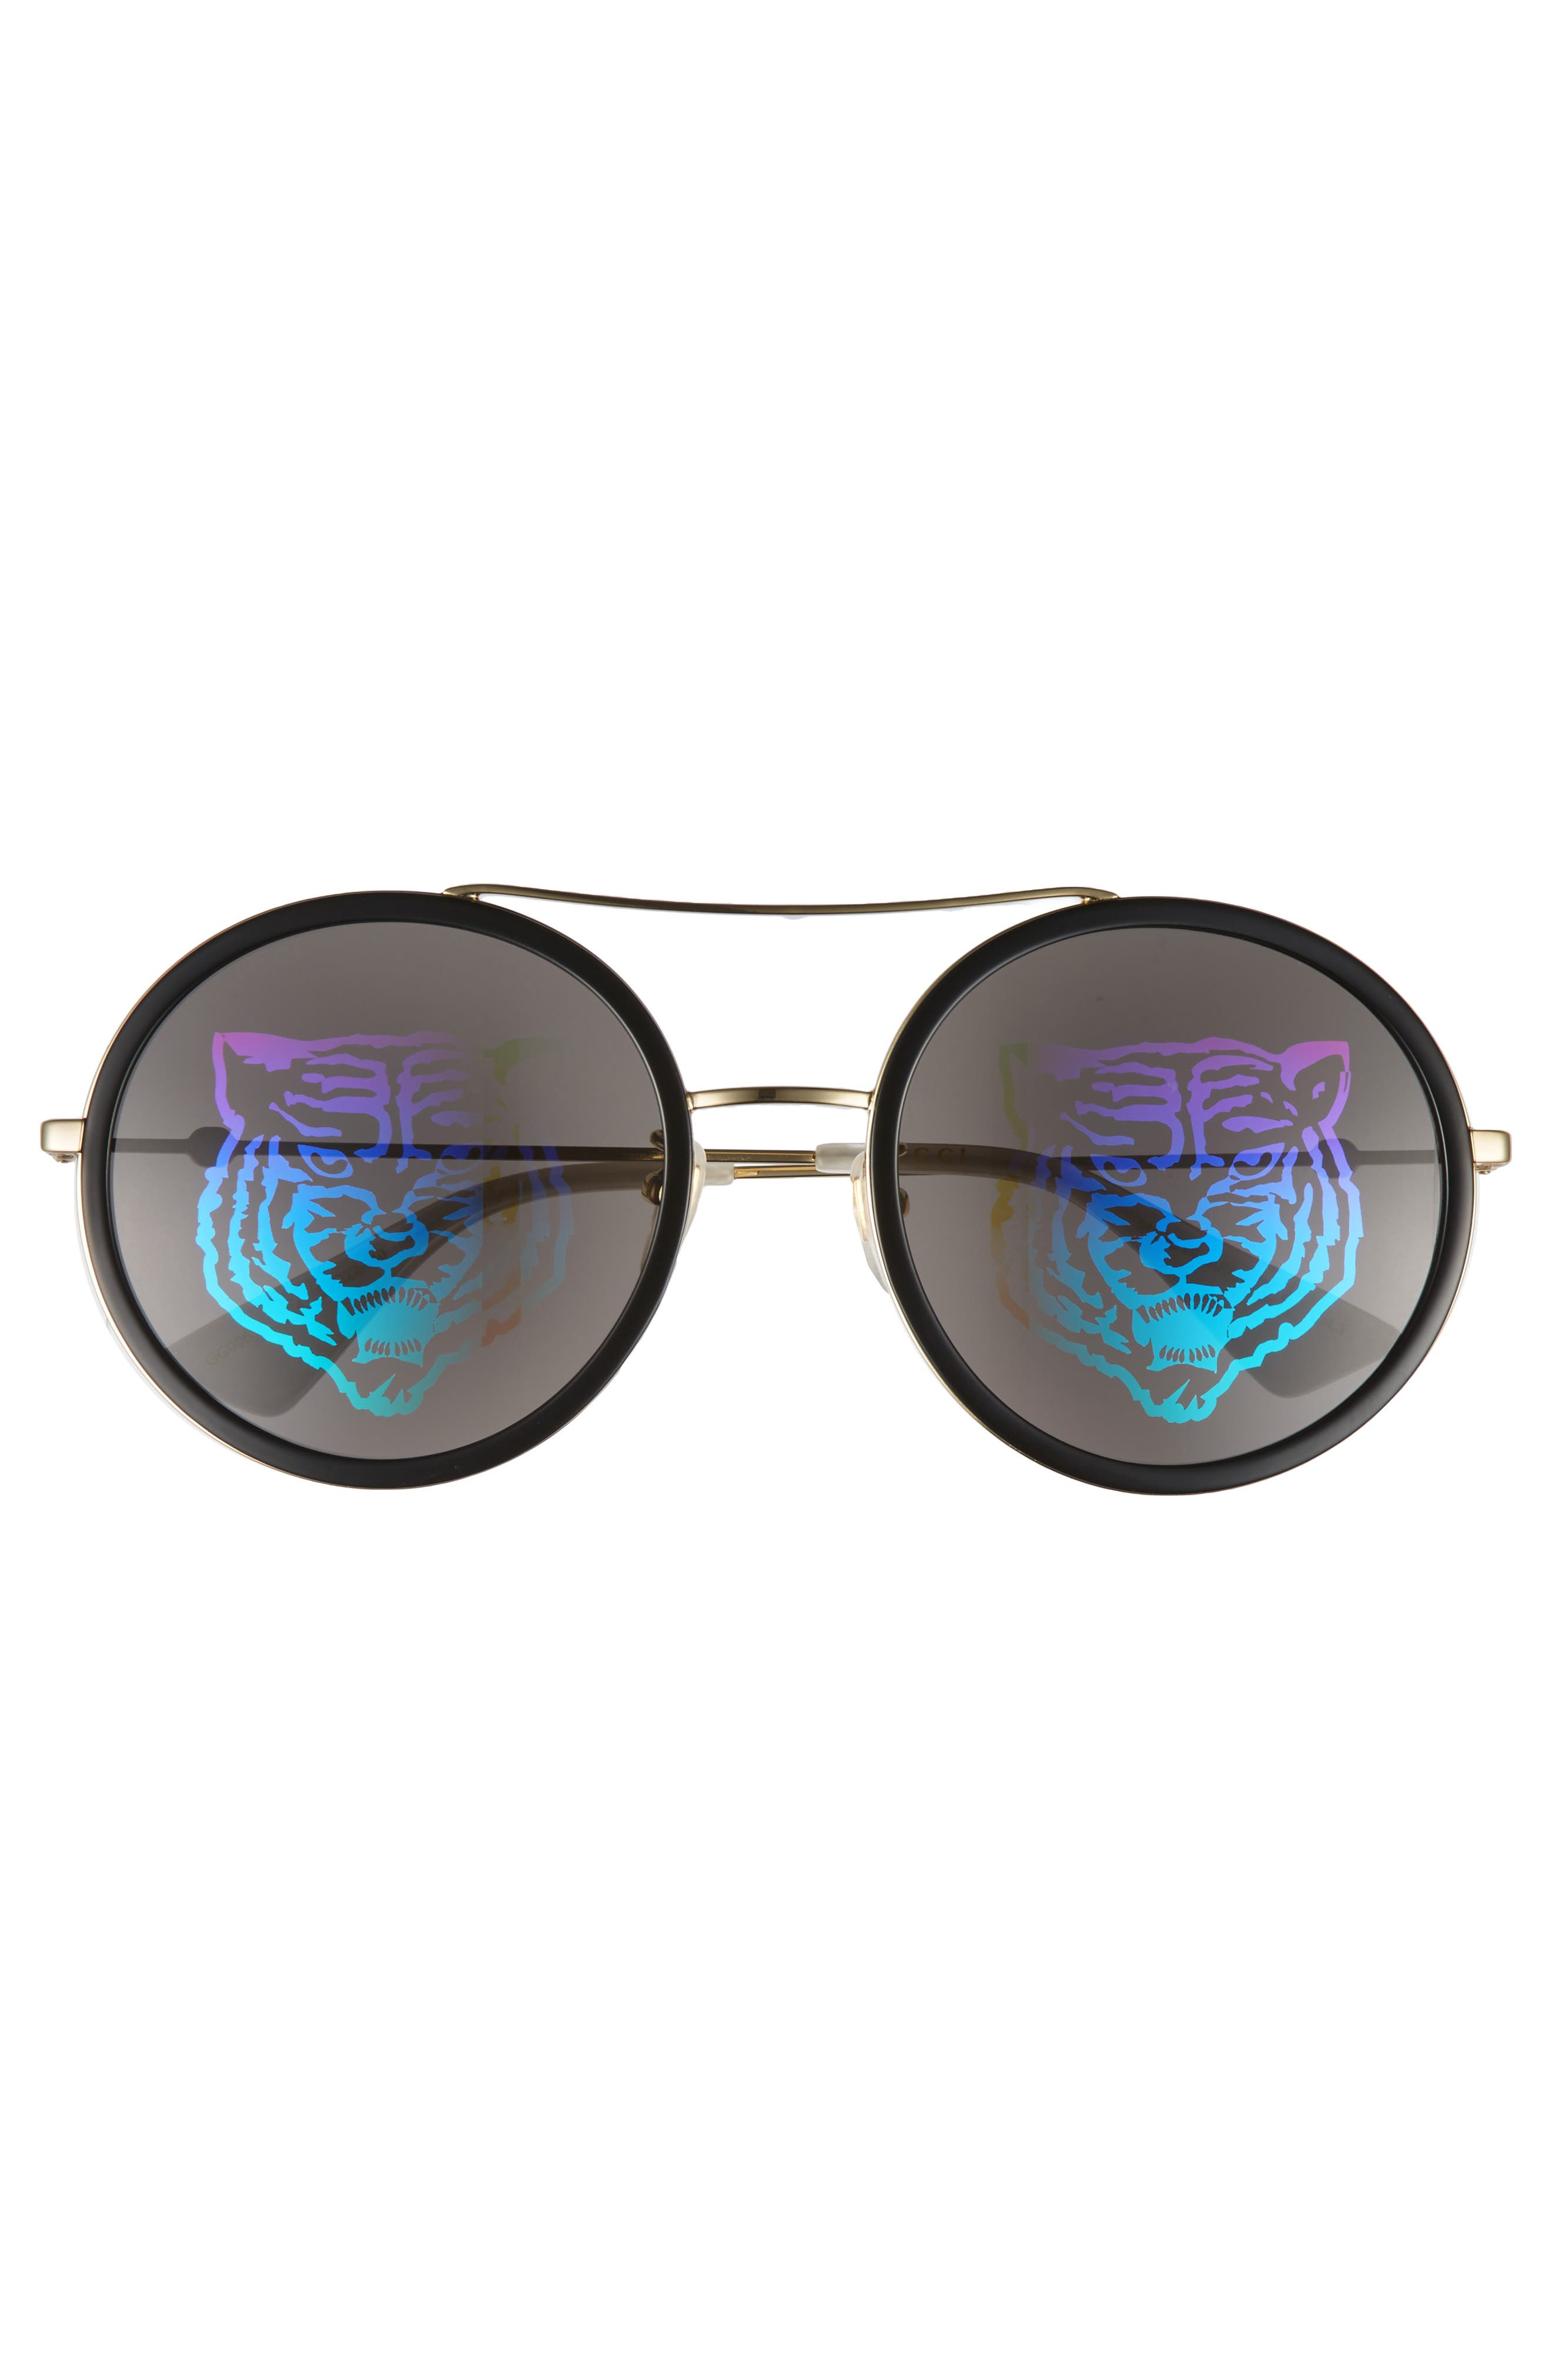 56mm Round Mirrored Aviator Sunglasses,                             Alternate thumbnail 3, color,                             GOLD/ TIGER